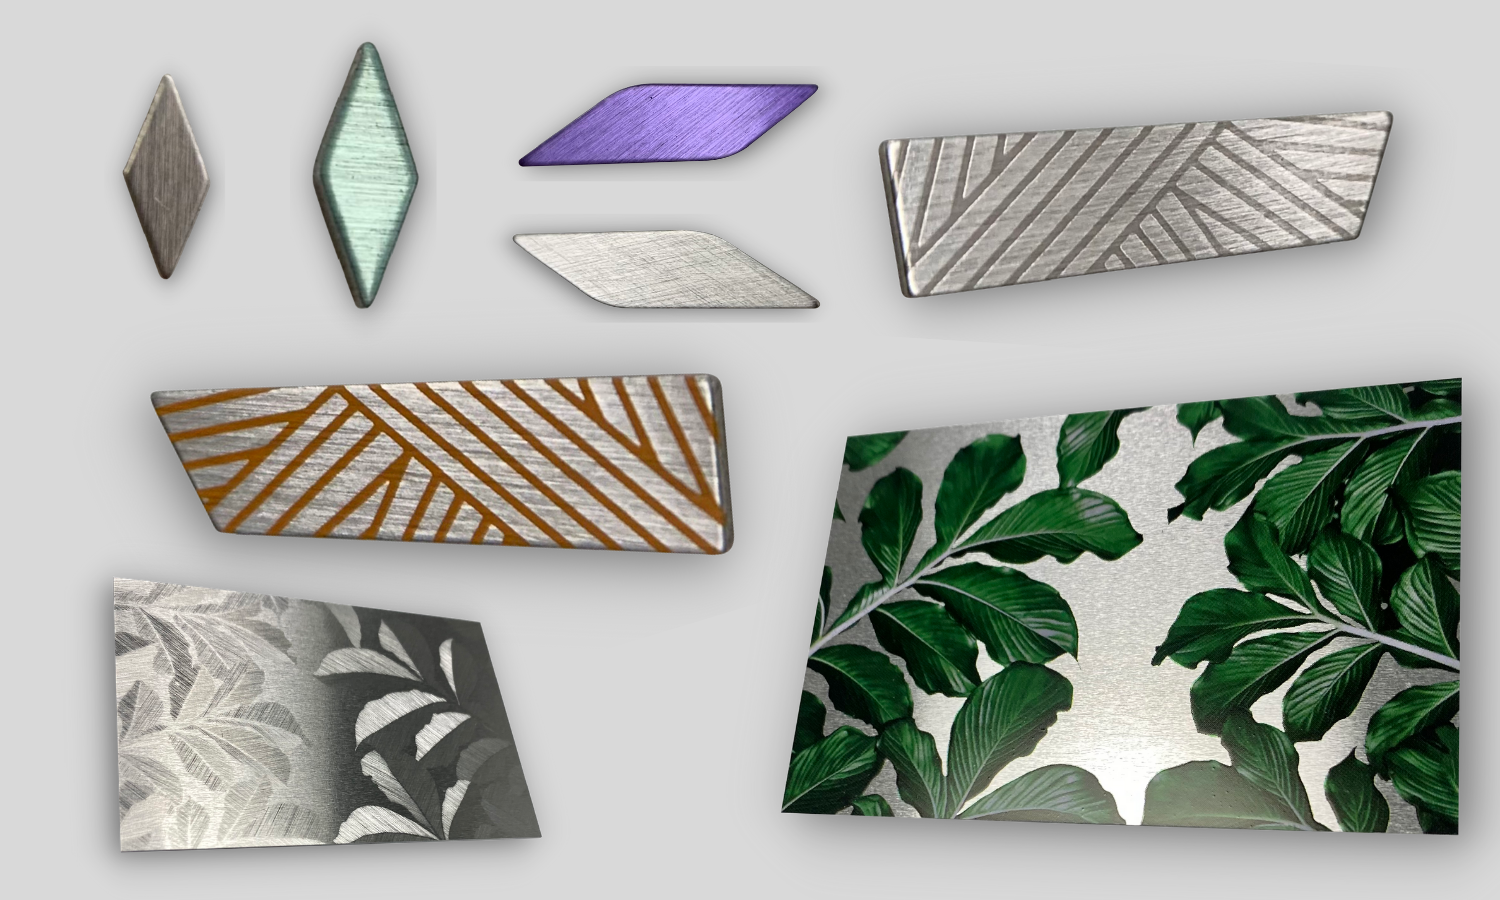 Collage of decorative trim pieces made from recycled aluminum. Rectangle leaf pattern with shades of green. diamond shaped green, purple, and rose gold; selectively brushed aluminum with 2 colors.